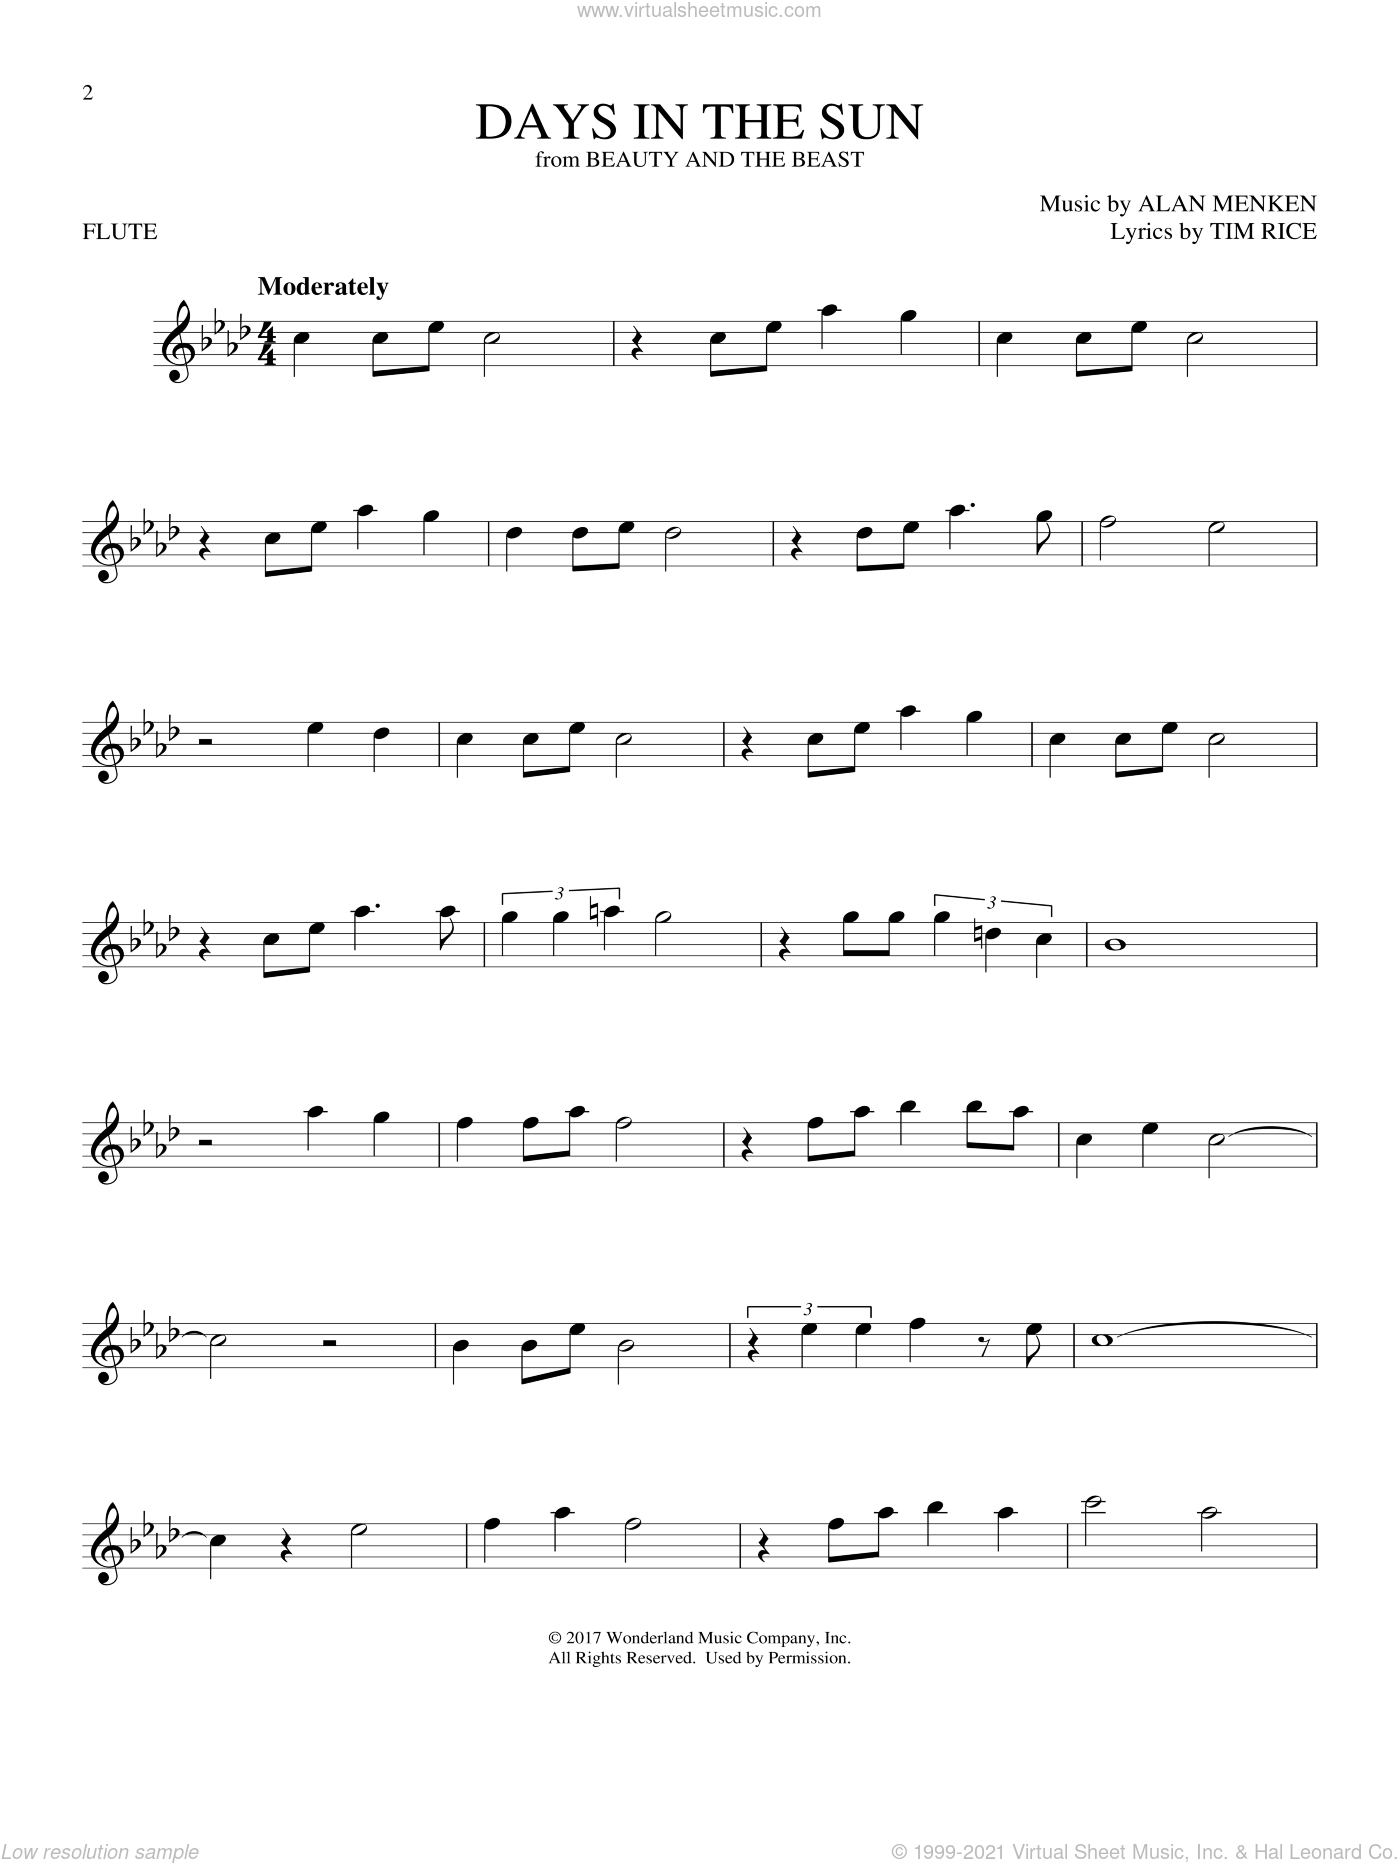 Days In The Sun (from Beauty And The Beast) sheet music for flute solo by Alan Menken and Tim Rice, intermediate skill level